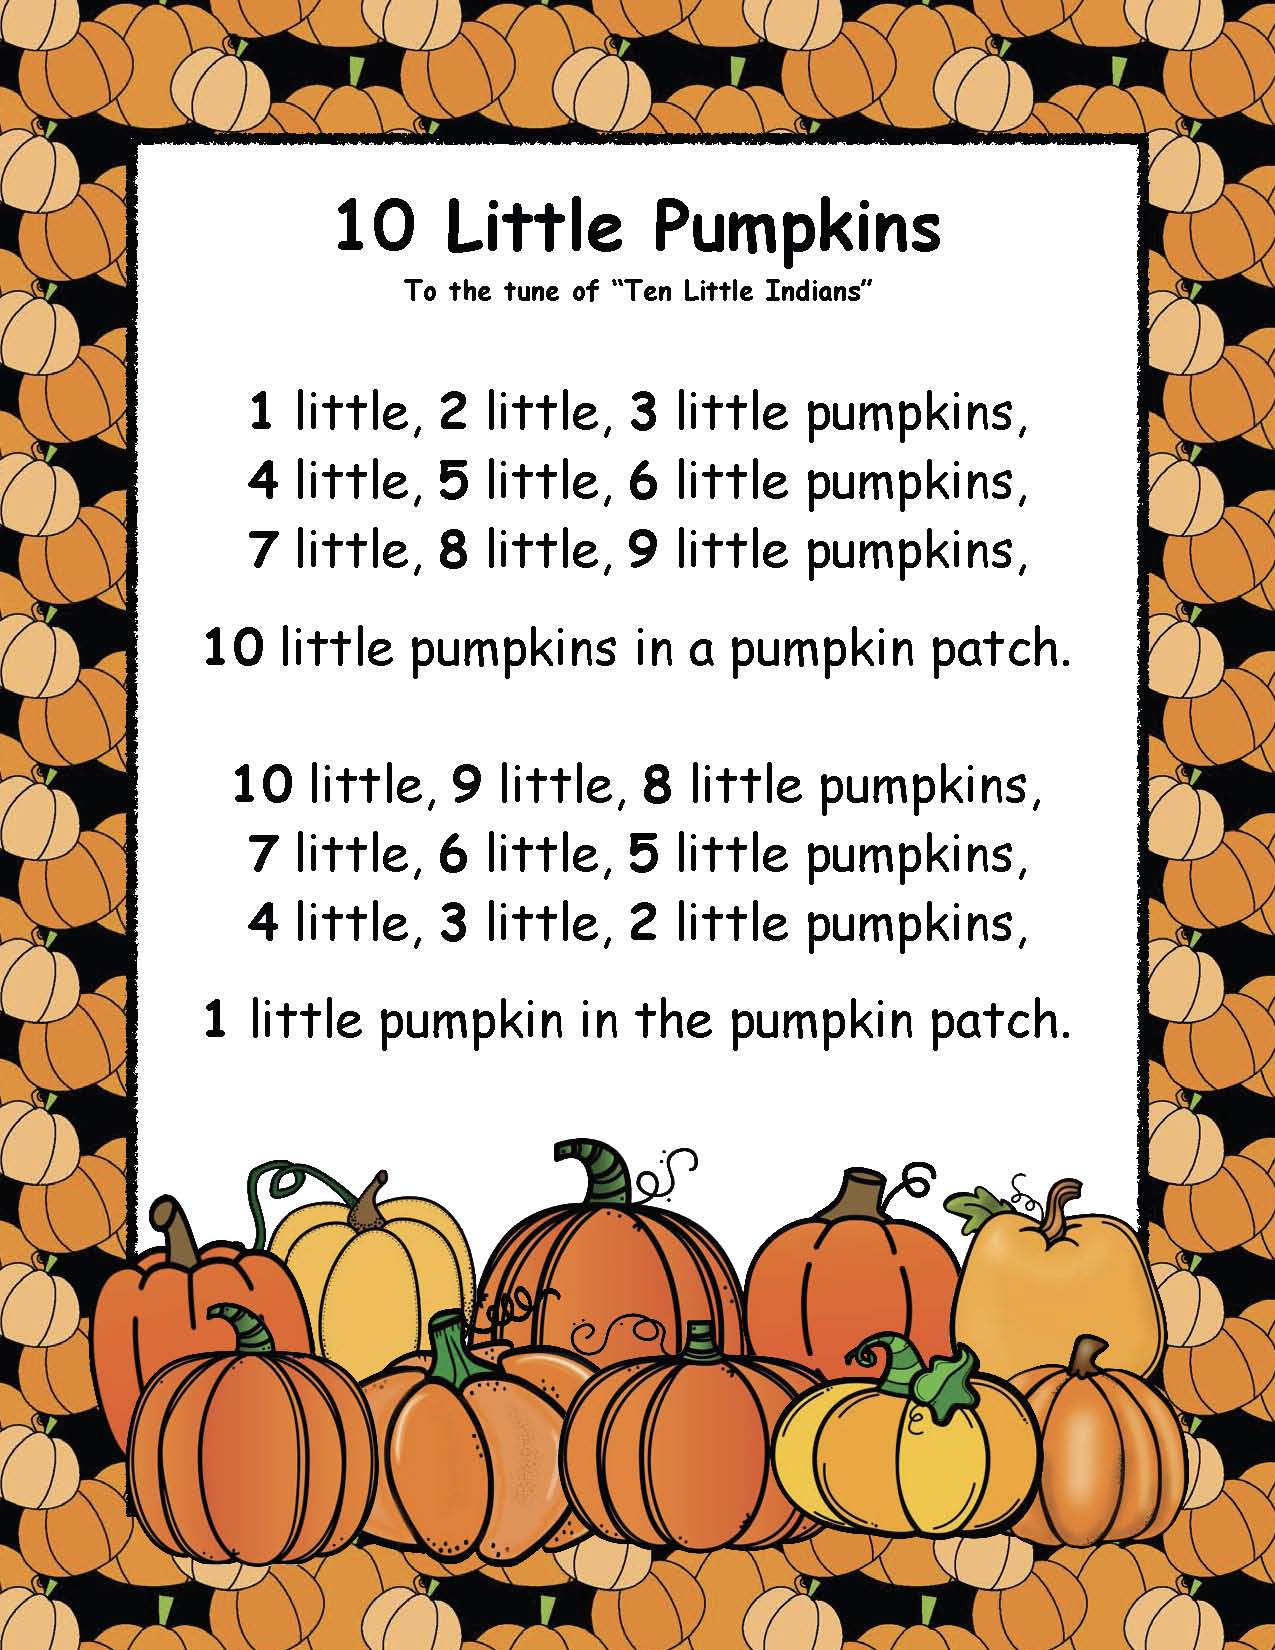 pumpkin activities, counting activities, number activities, pumpkin games,pmpkin songs, halloween activities, halloween games